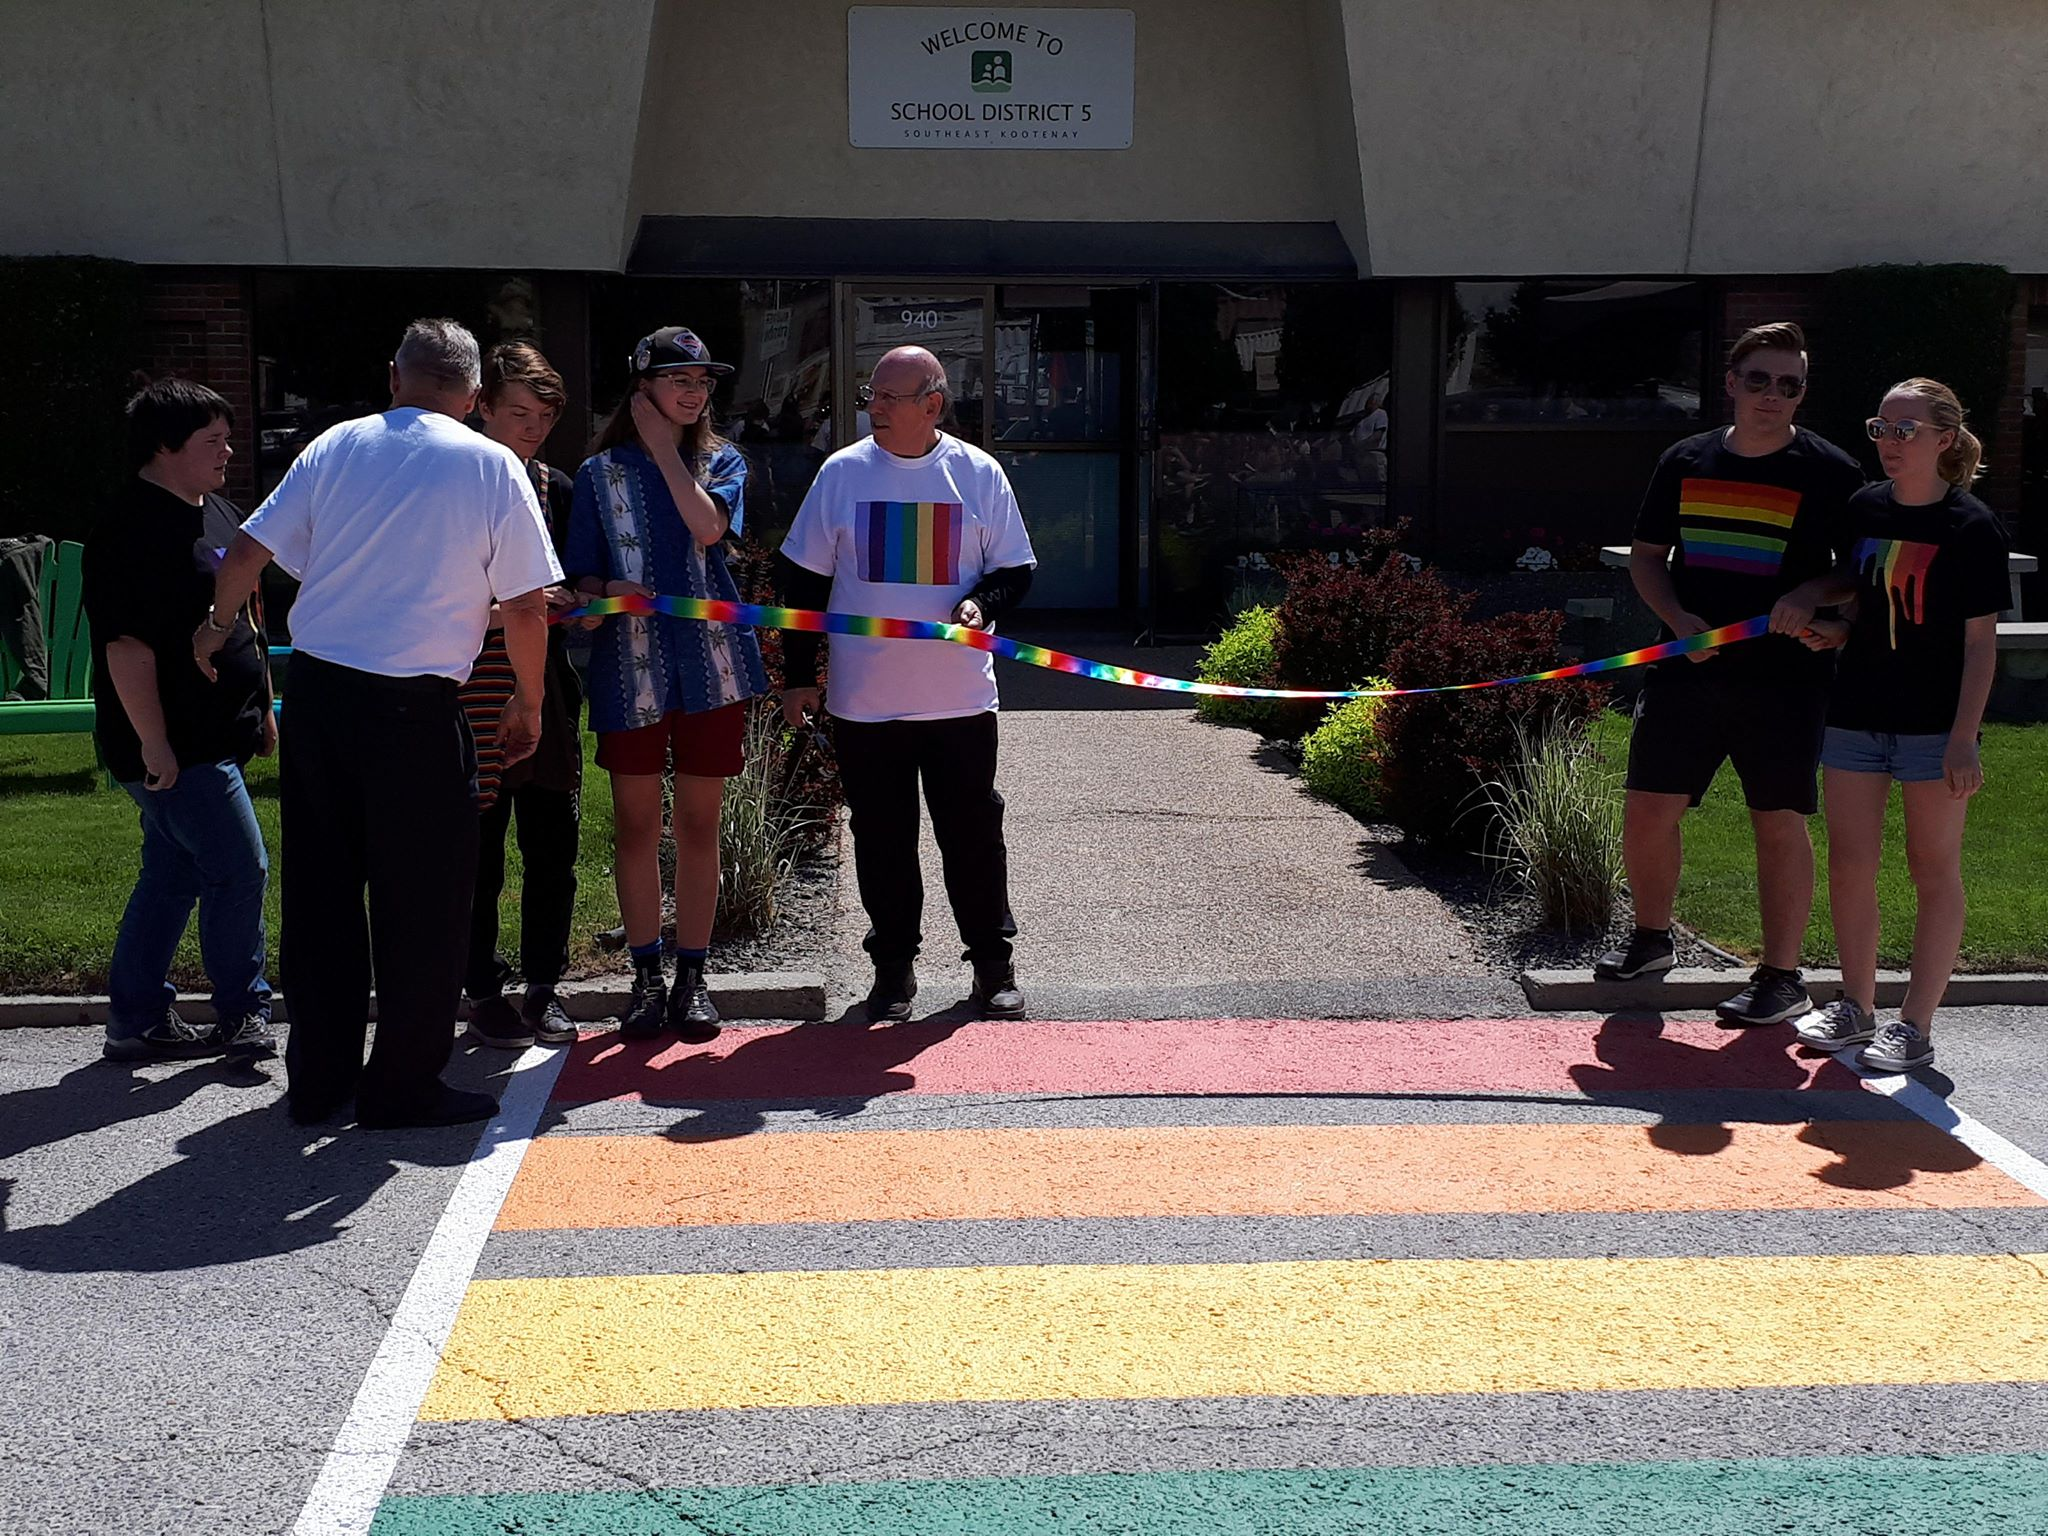 SD5 says more rainbow crosswalks in the works